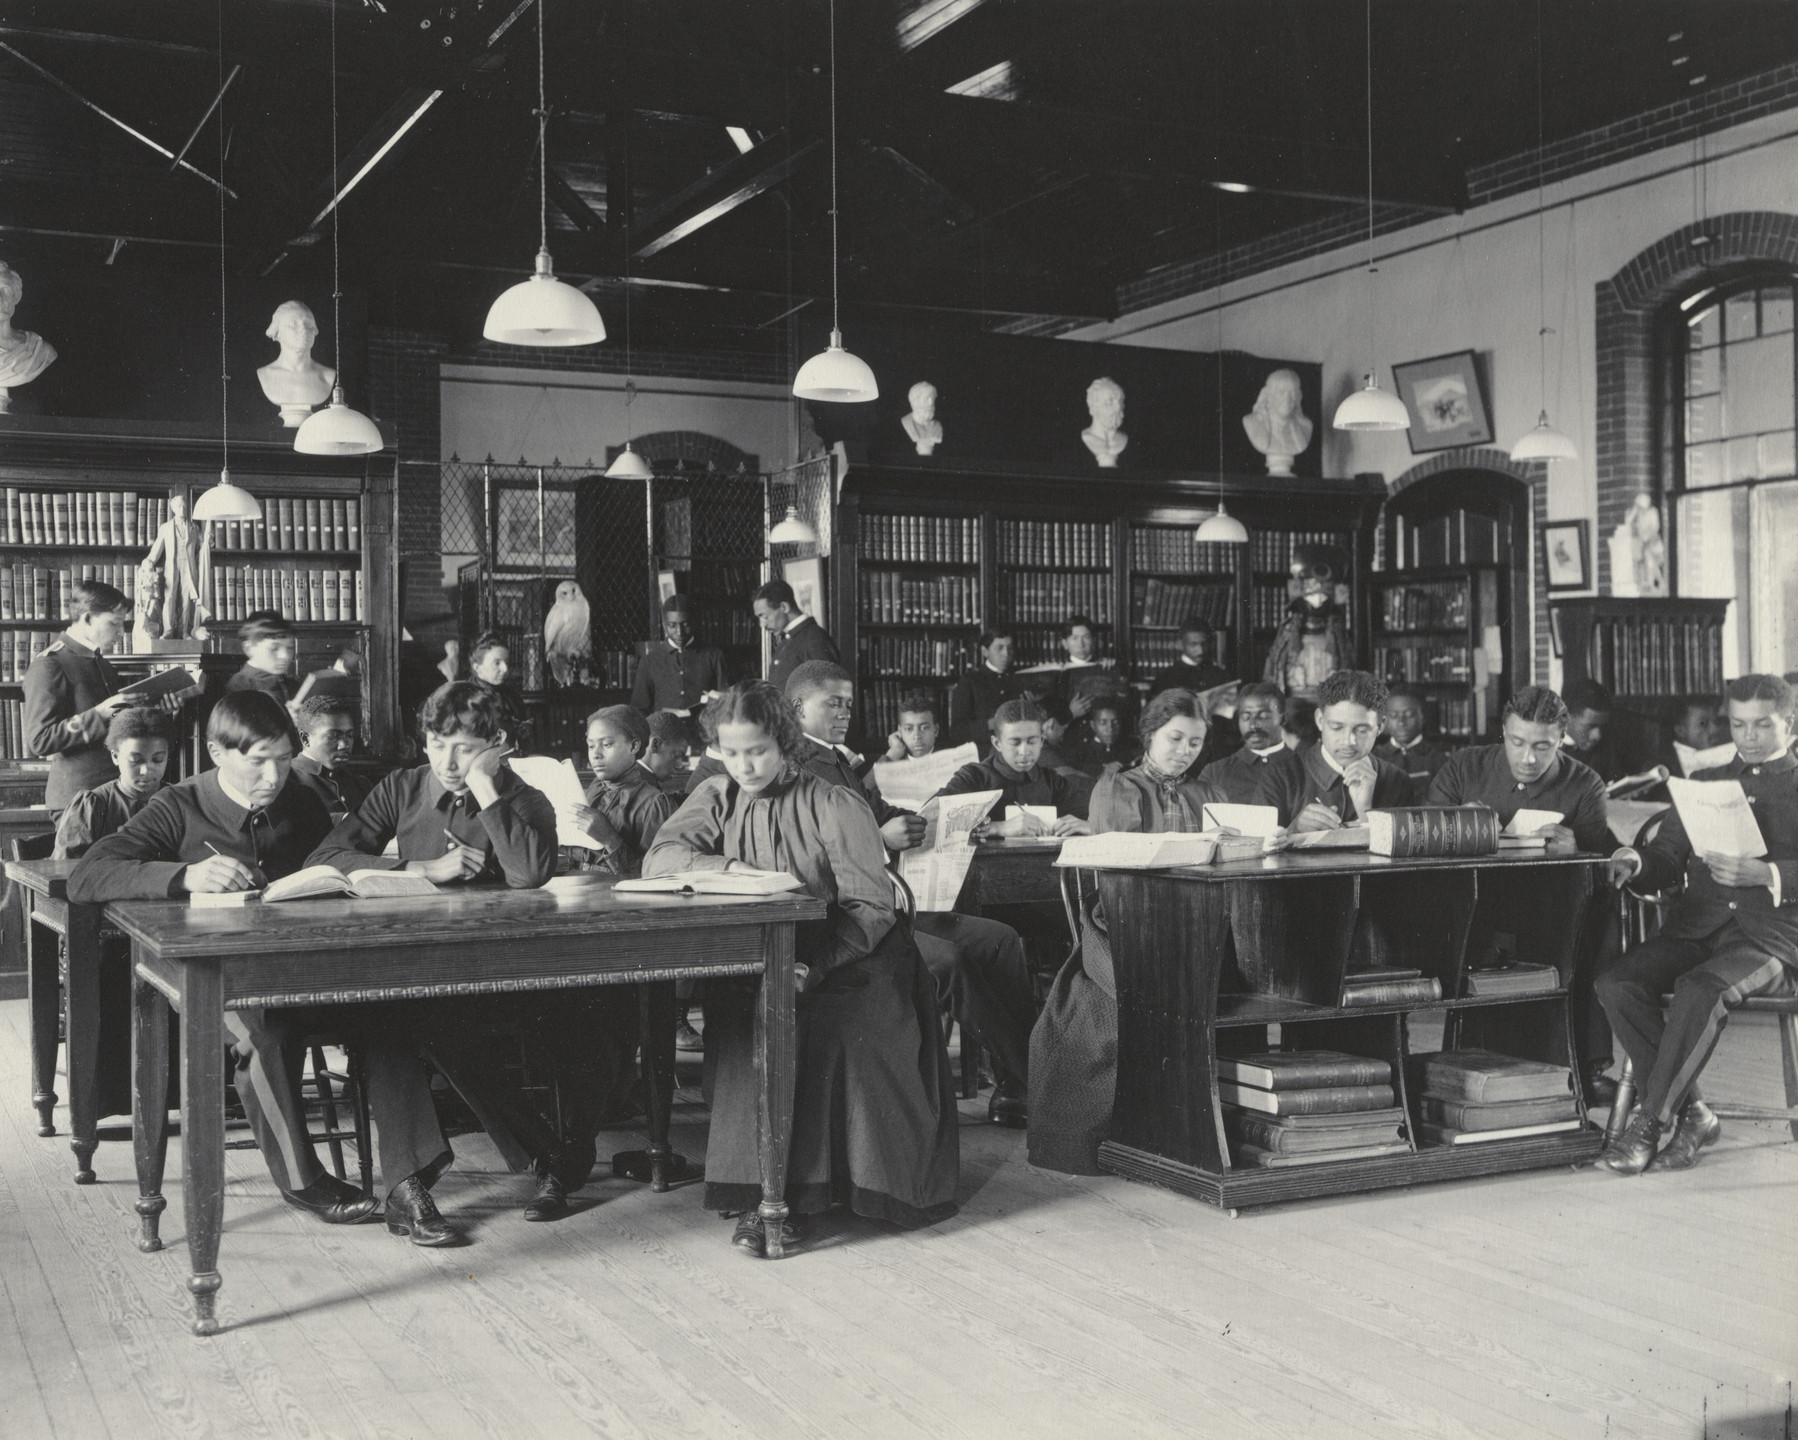 Frances Benjamin Johnston. English. Study in the Library. 1899-1900